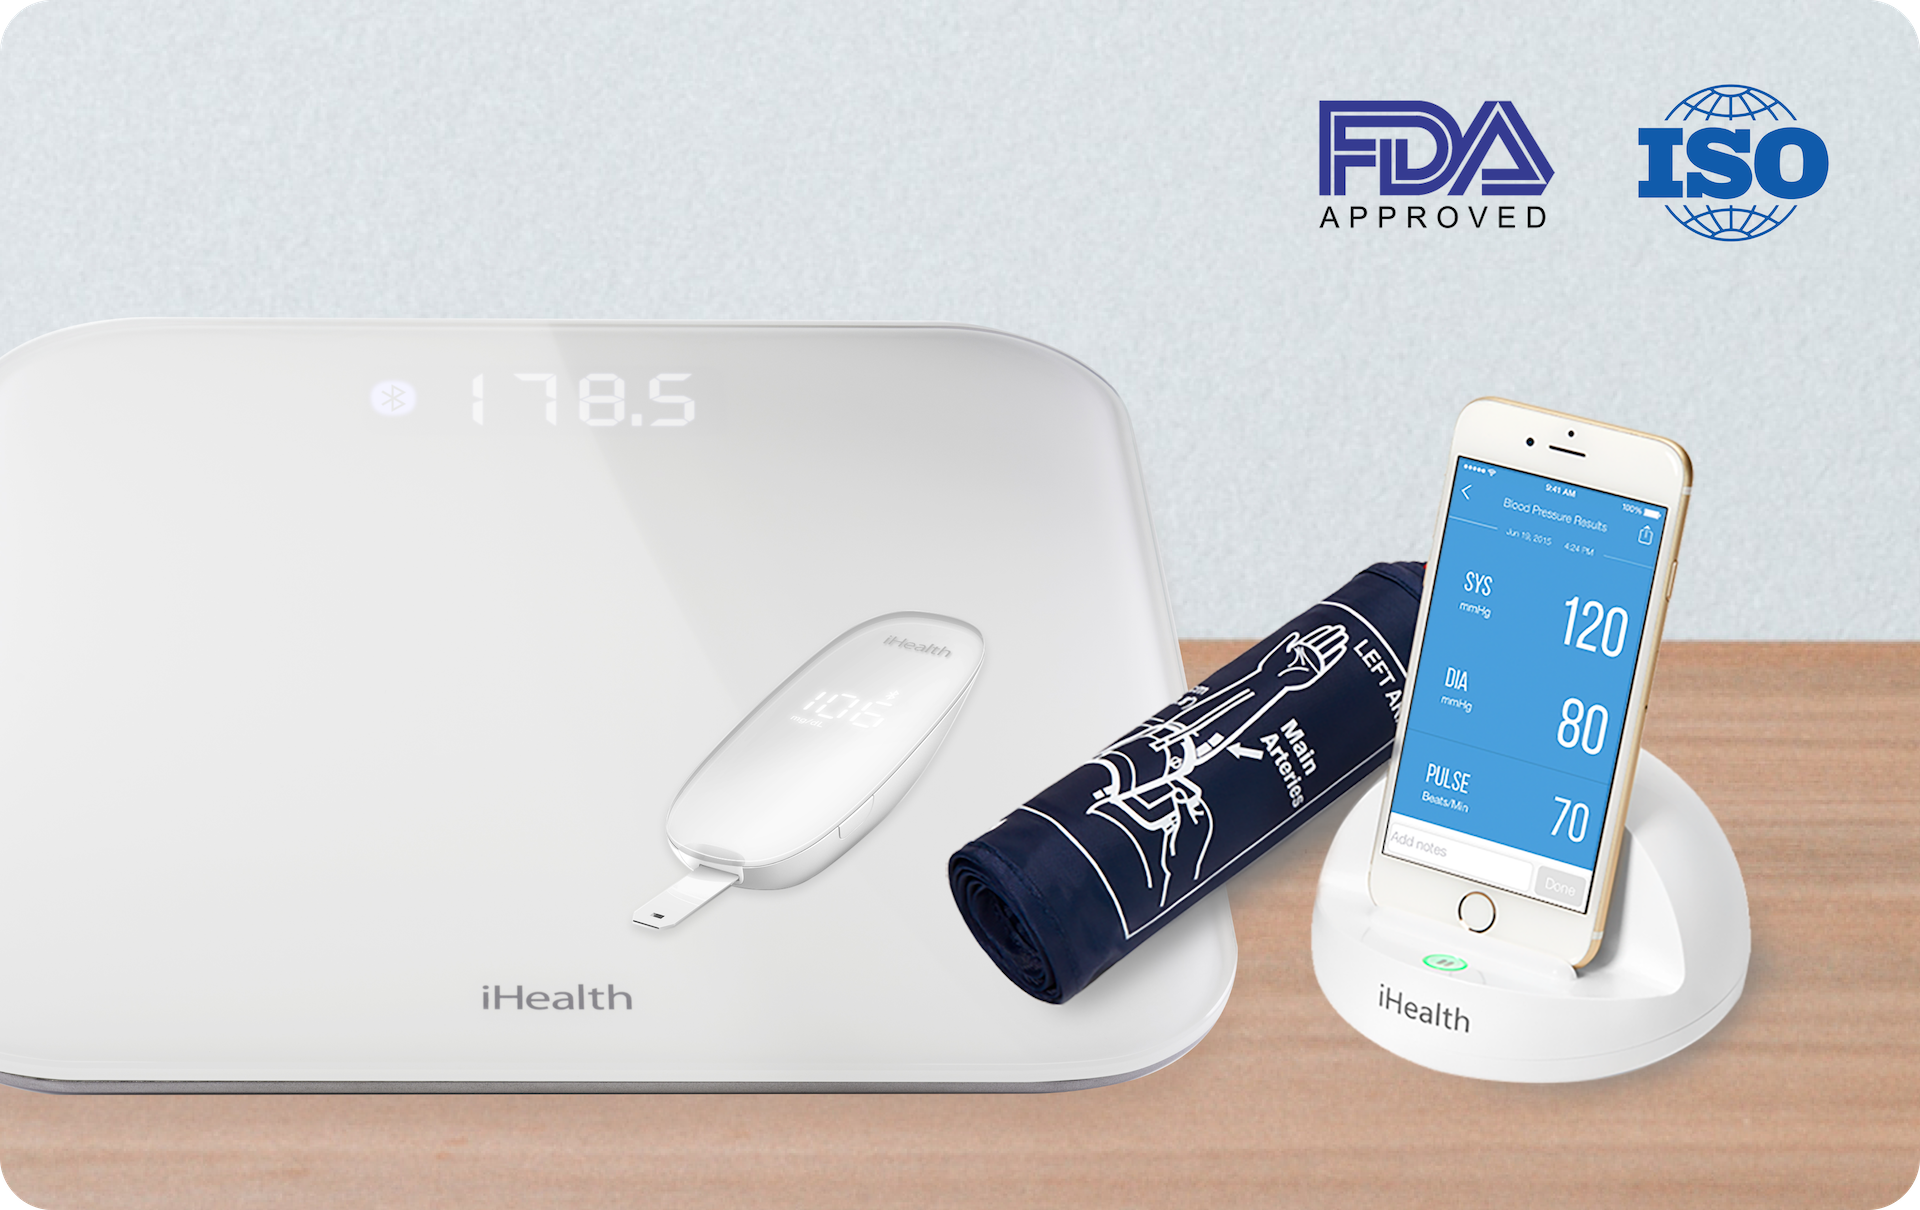 iHealth monitoring devices